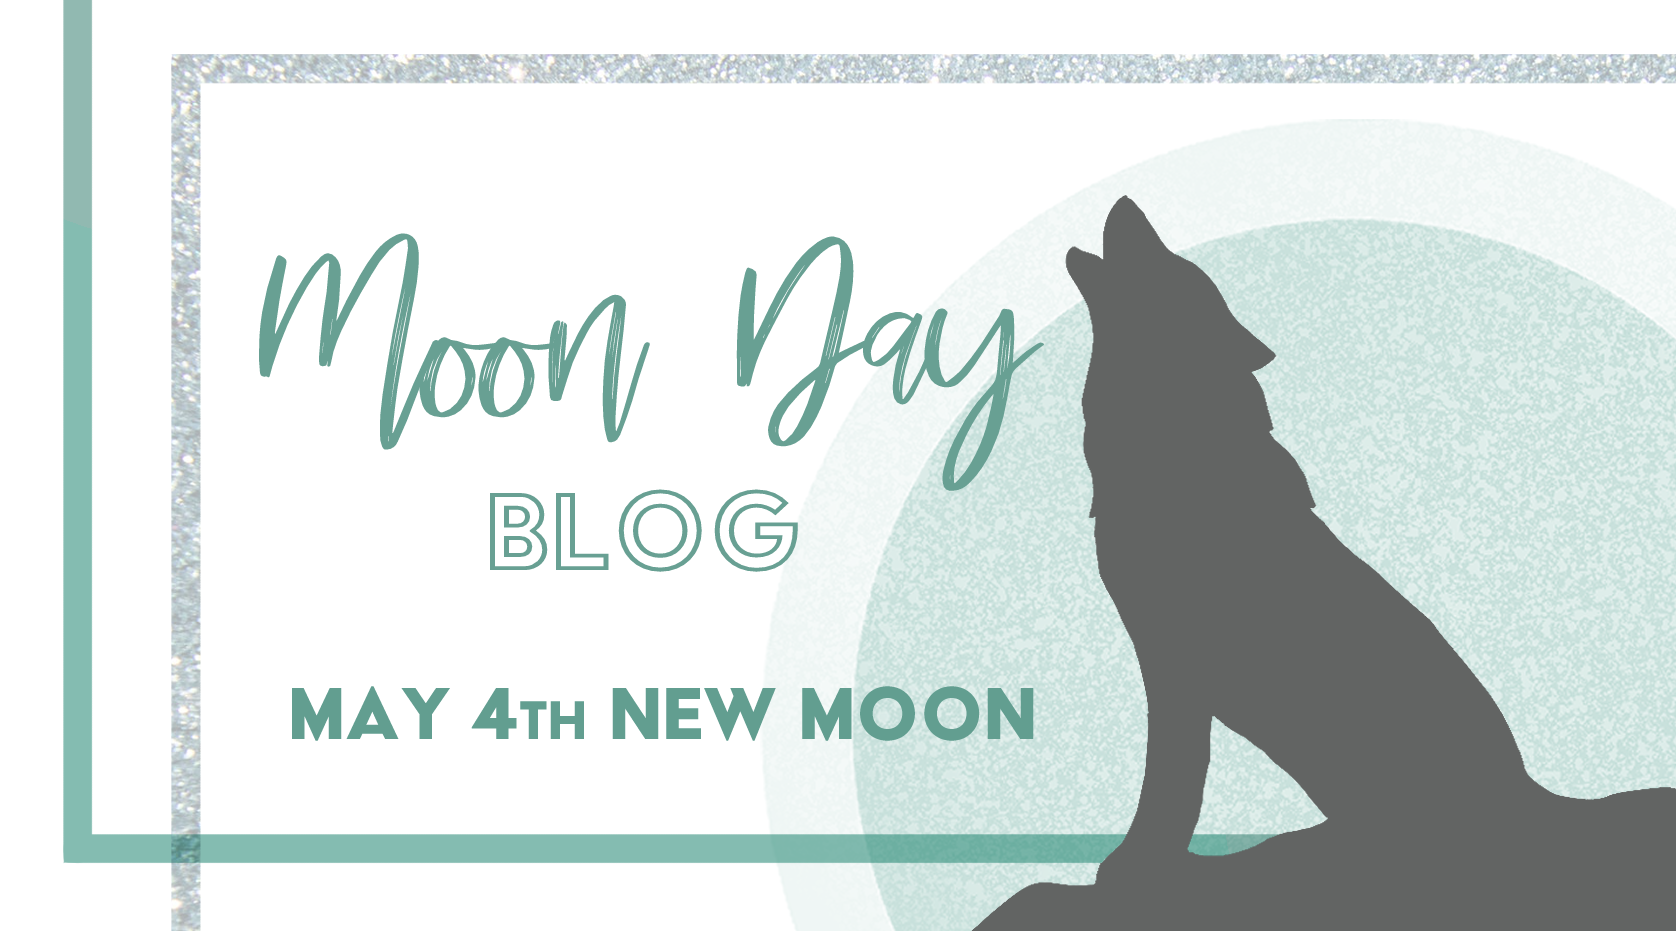 Moon Day – May 4th New Moon